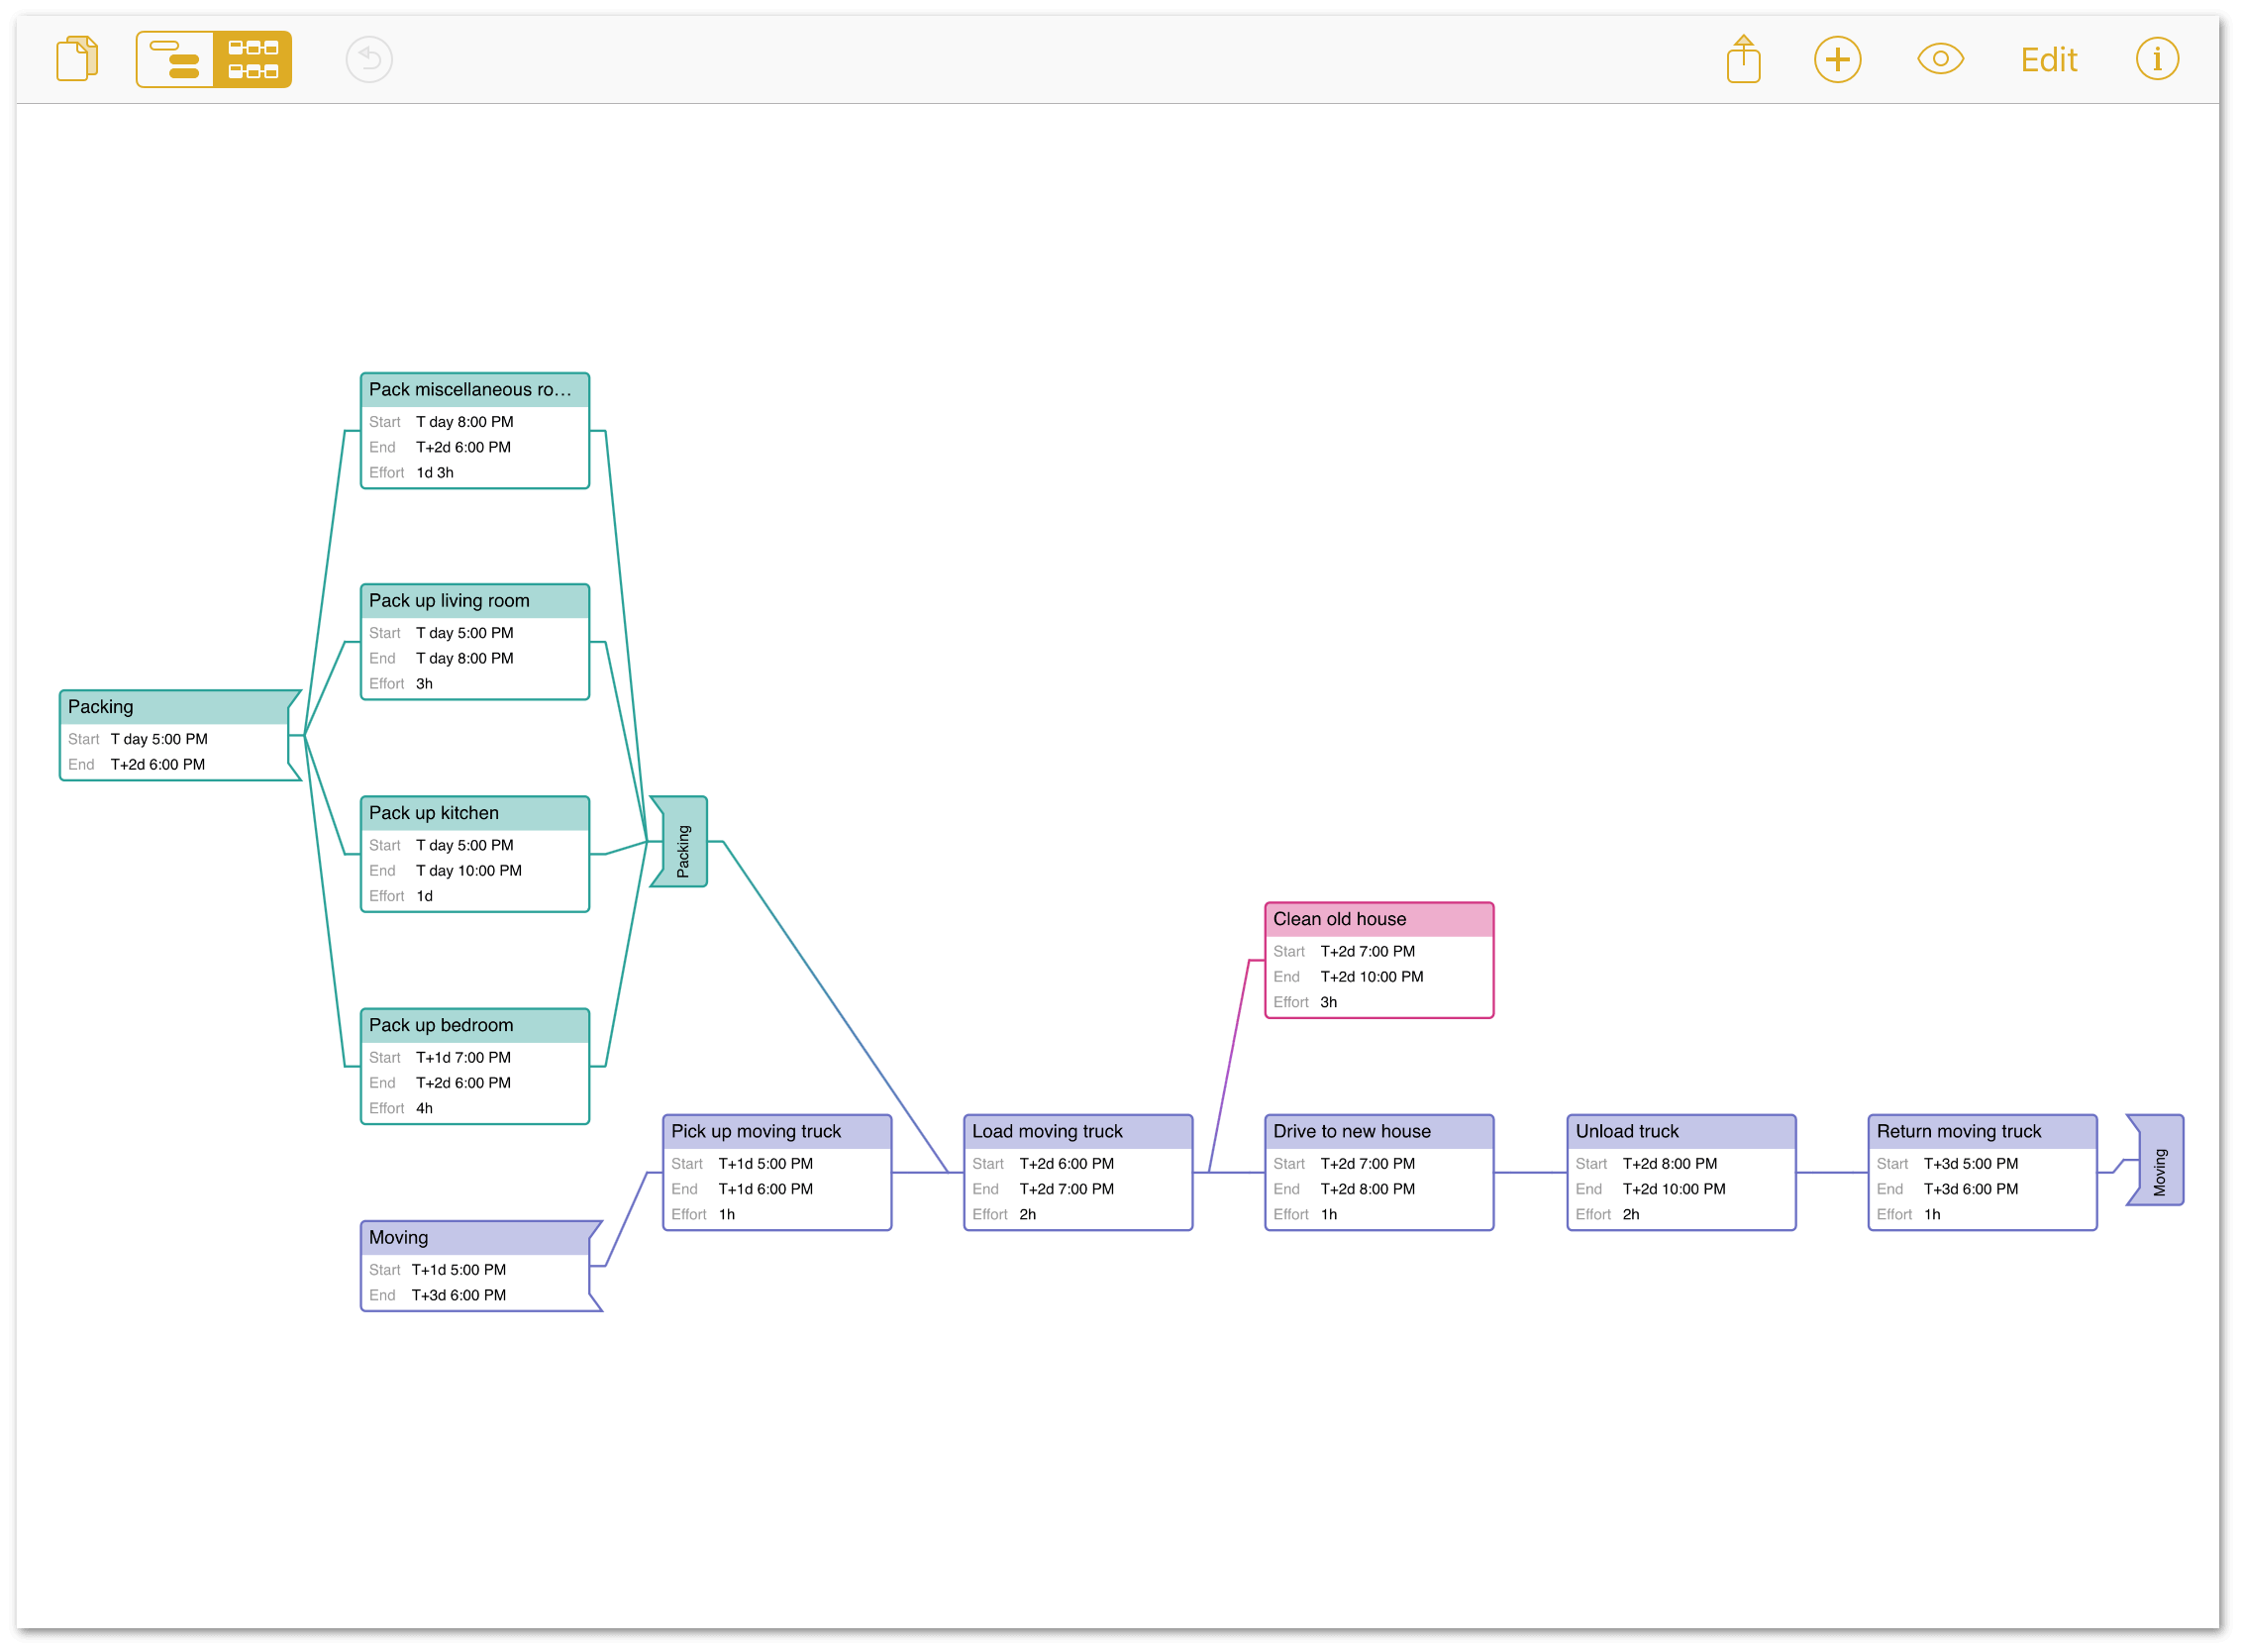 A project displayed in Network Diagram view in OmniPlan 3 for iOS.